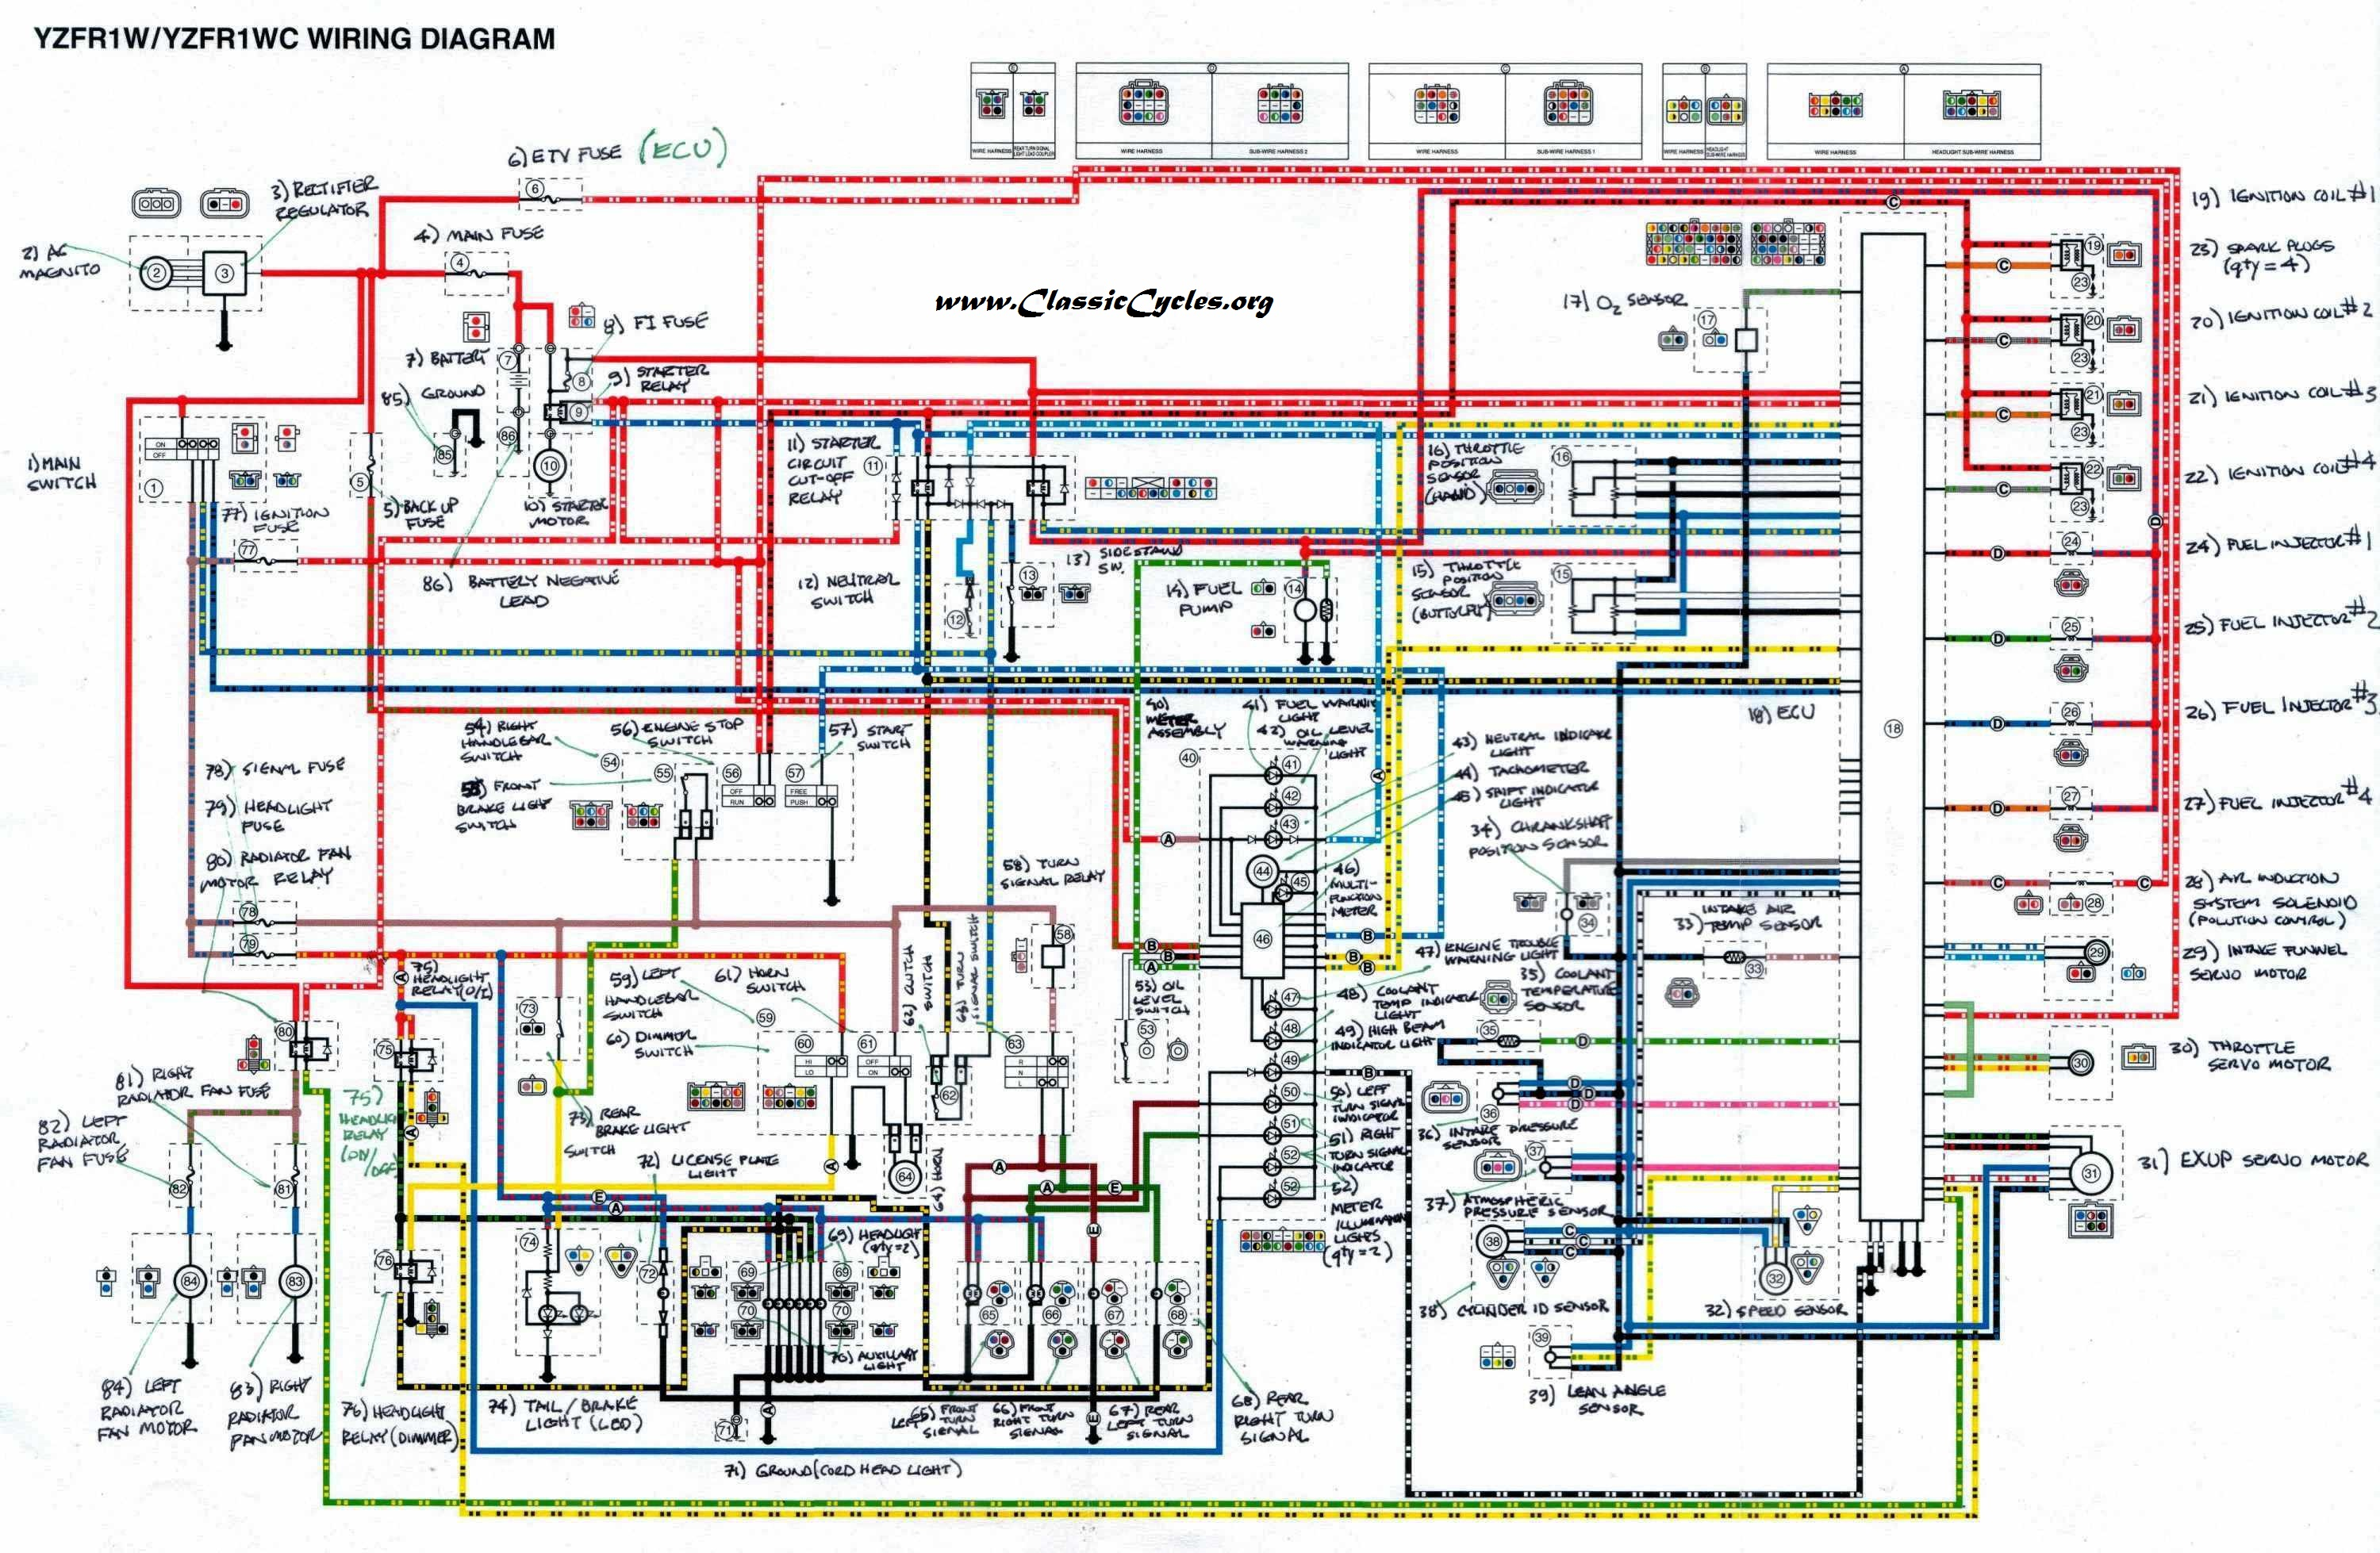 yamaha gx 80 1976 moto radio wiring diagrams yamaha wiring diagrams instruction Yamaha Wiring Schematic at soozxer.org